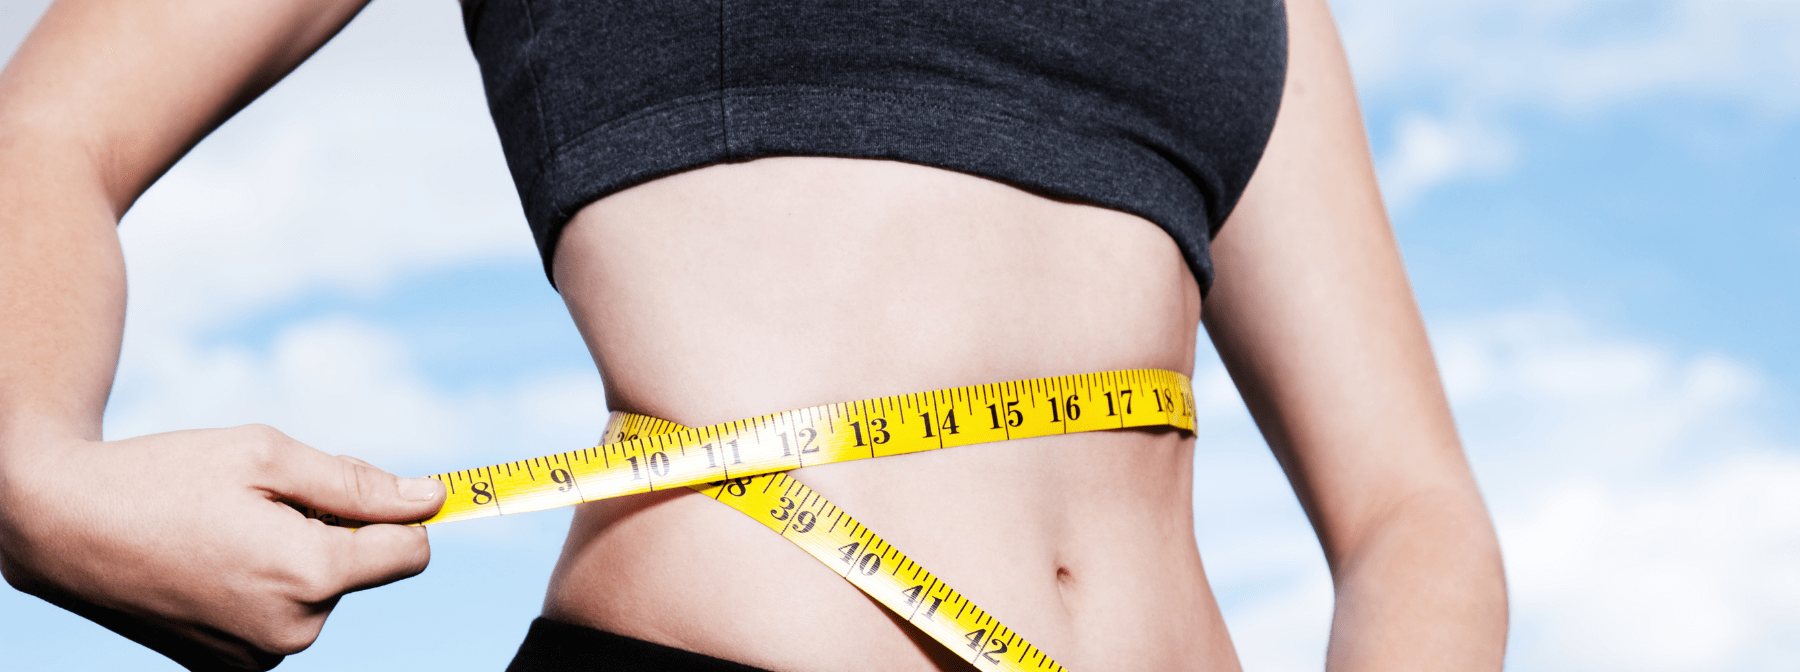 5 Ways To Prevent Loose Skin After Weight Loss